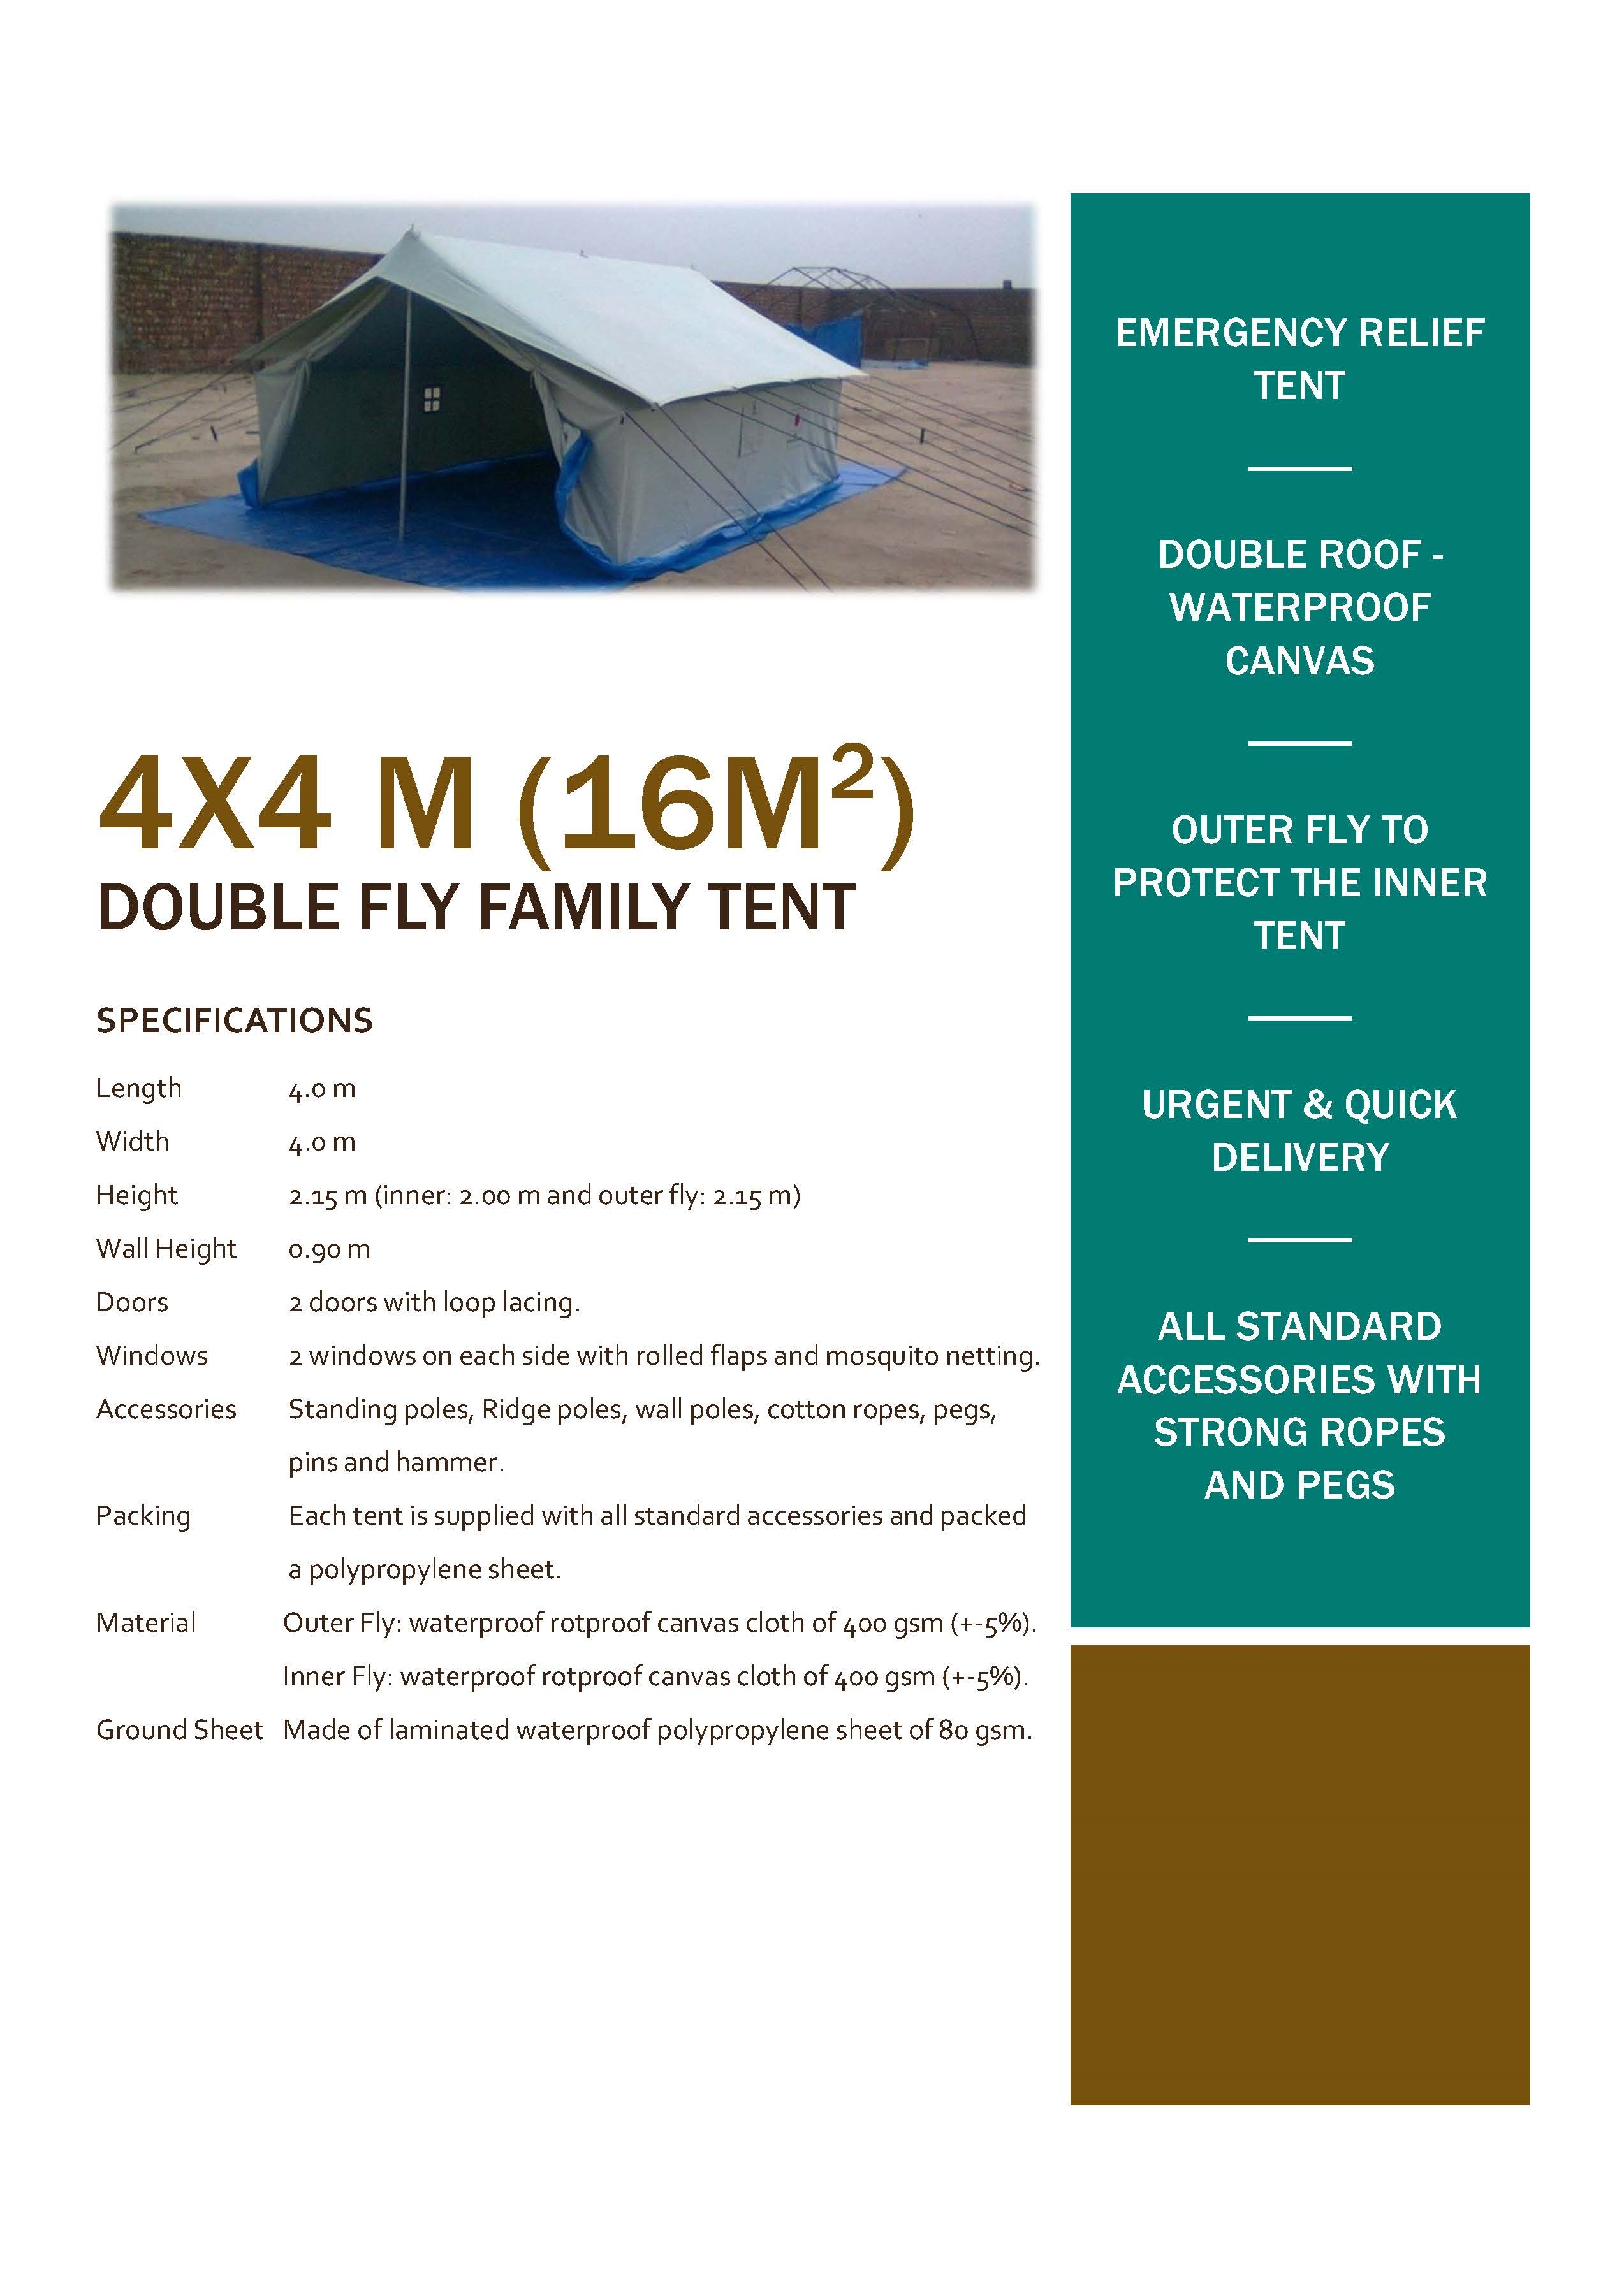 36482 - COVID19 ISOLATION TENTS Pakistan